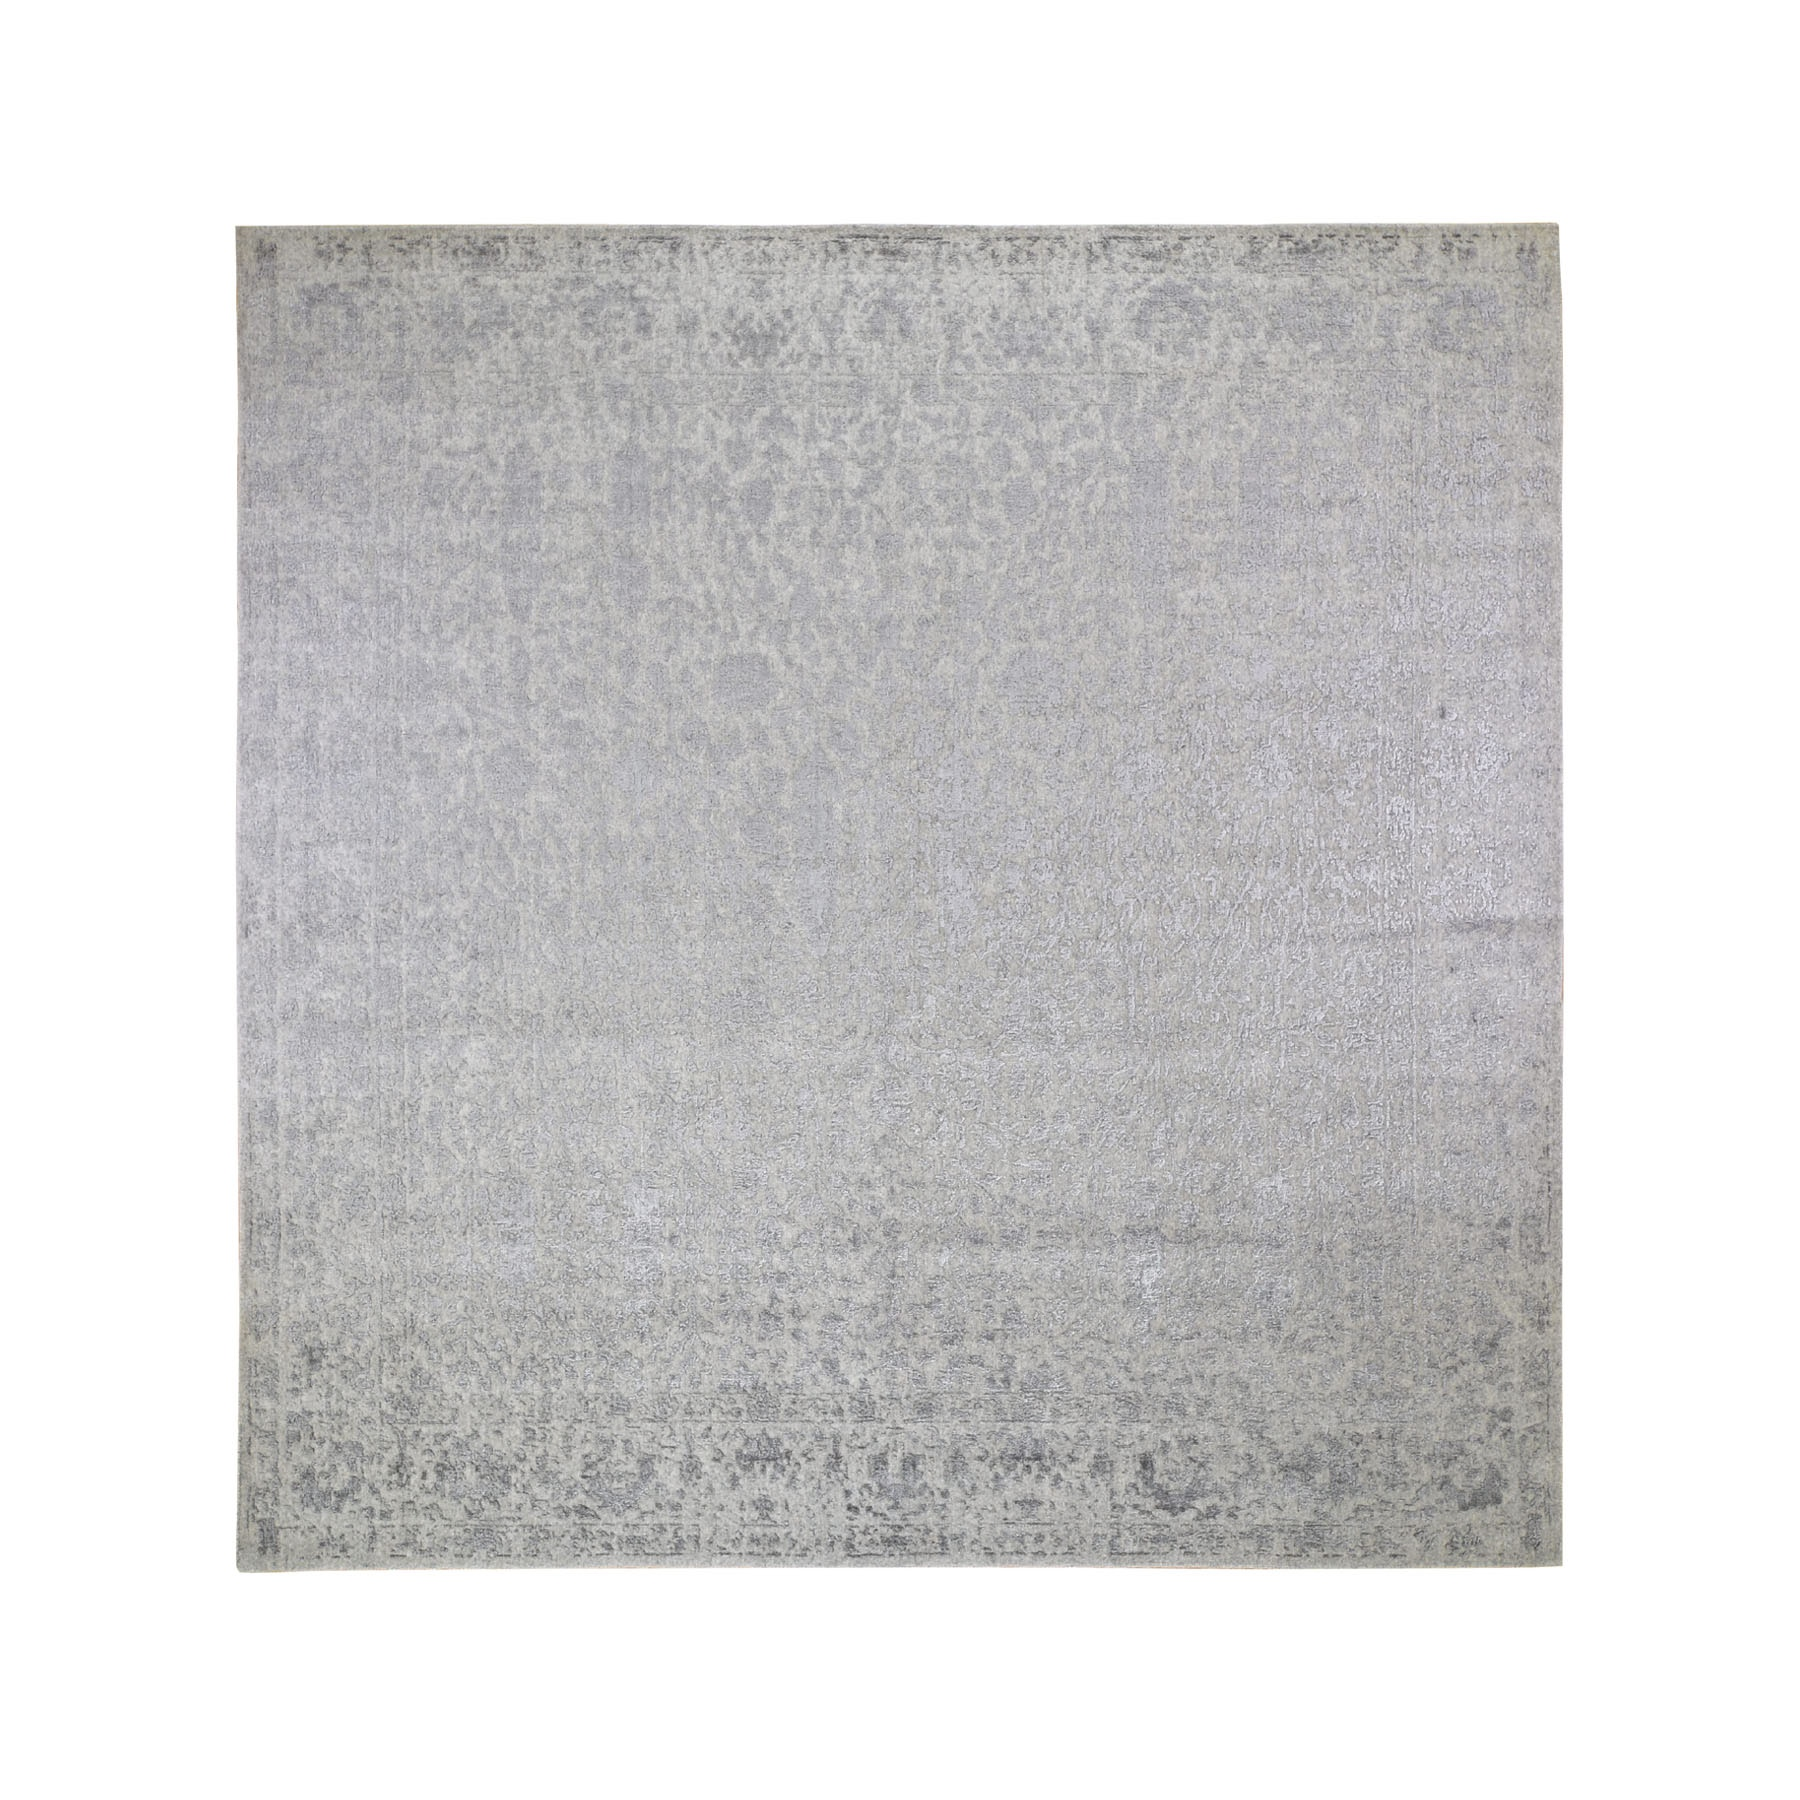 10'x10' Square jacquard Hand Loomed Gray Broken Cypress Tree Design Wool And Silk Thick And Plush Oriental Rug